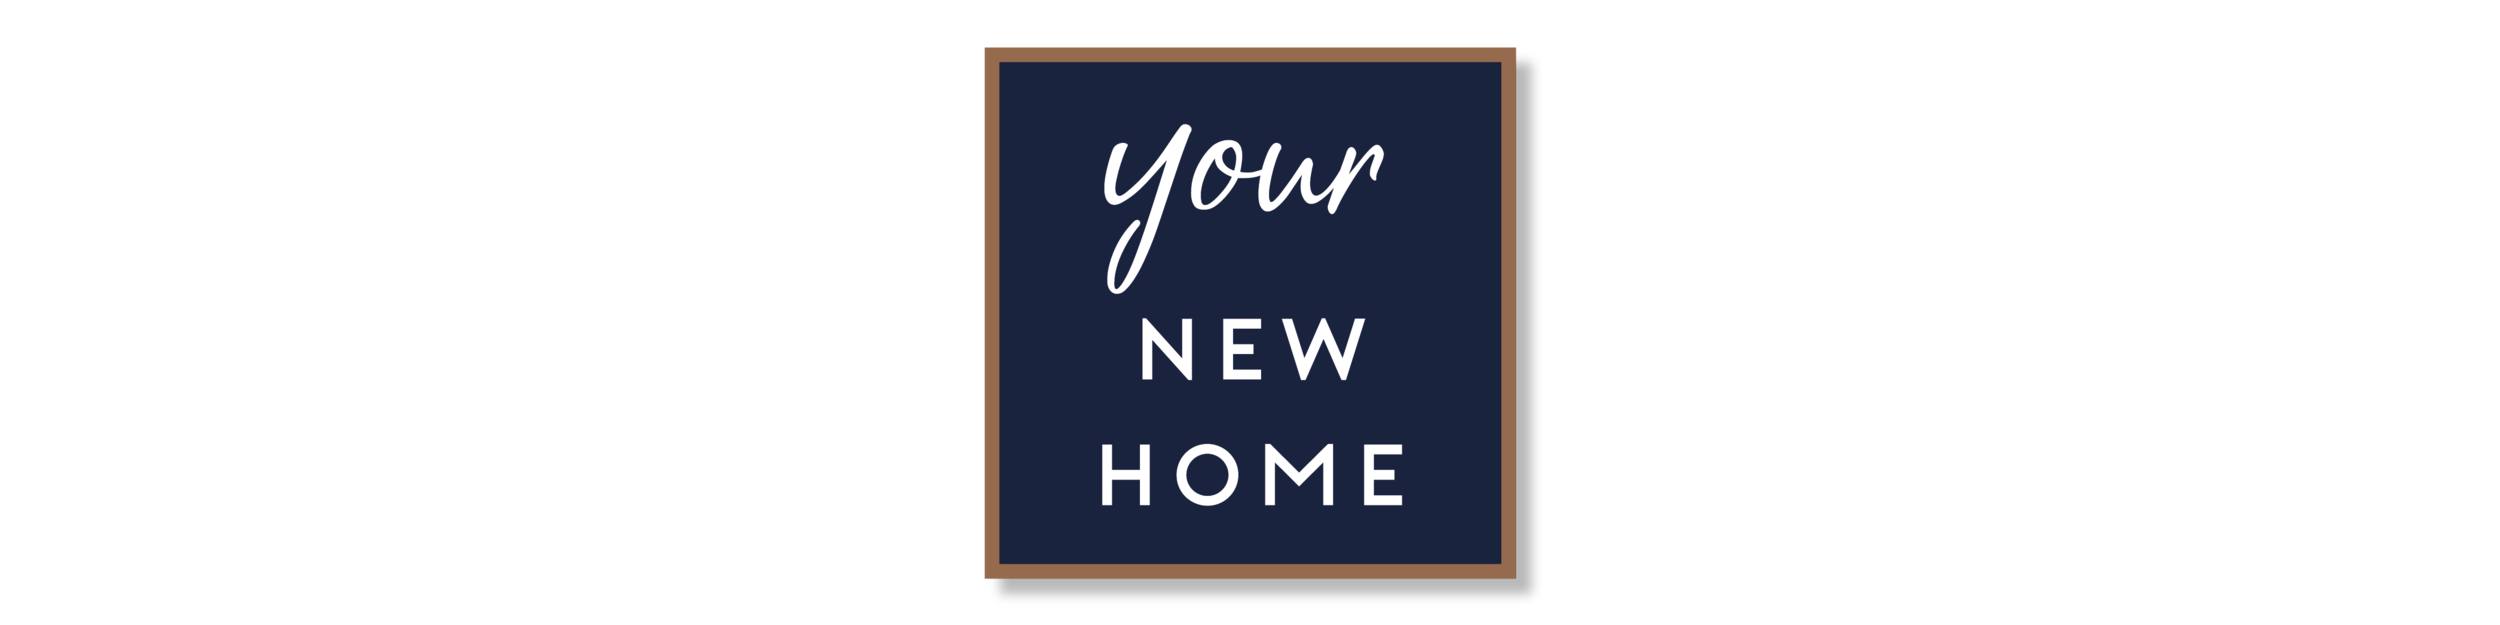 hollins_homes_your_new_home_long.png